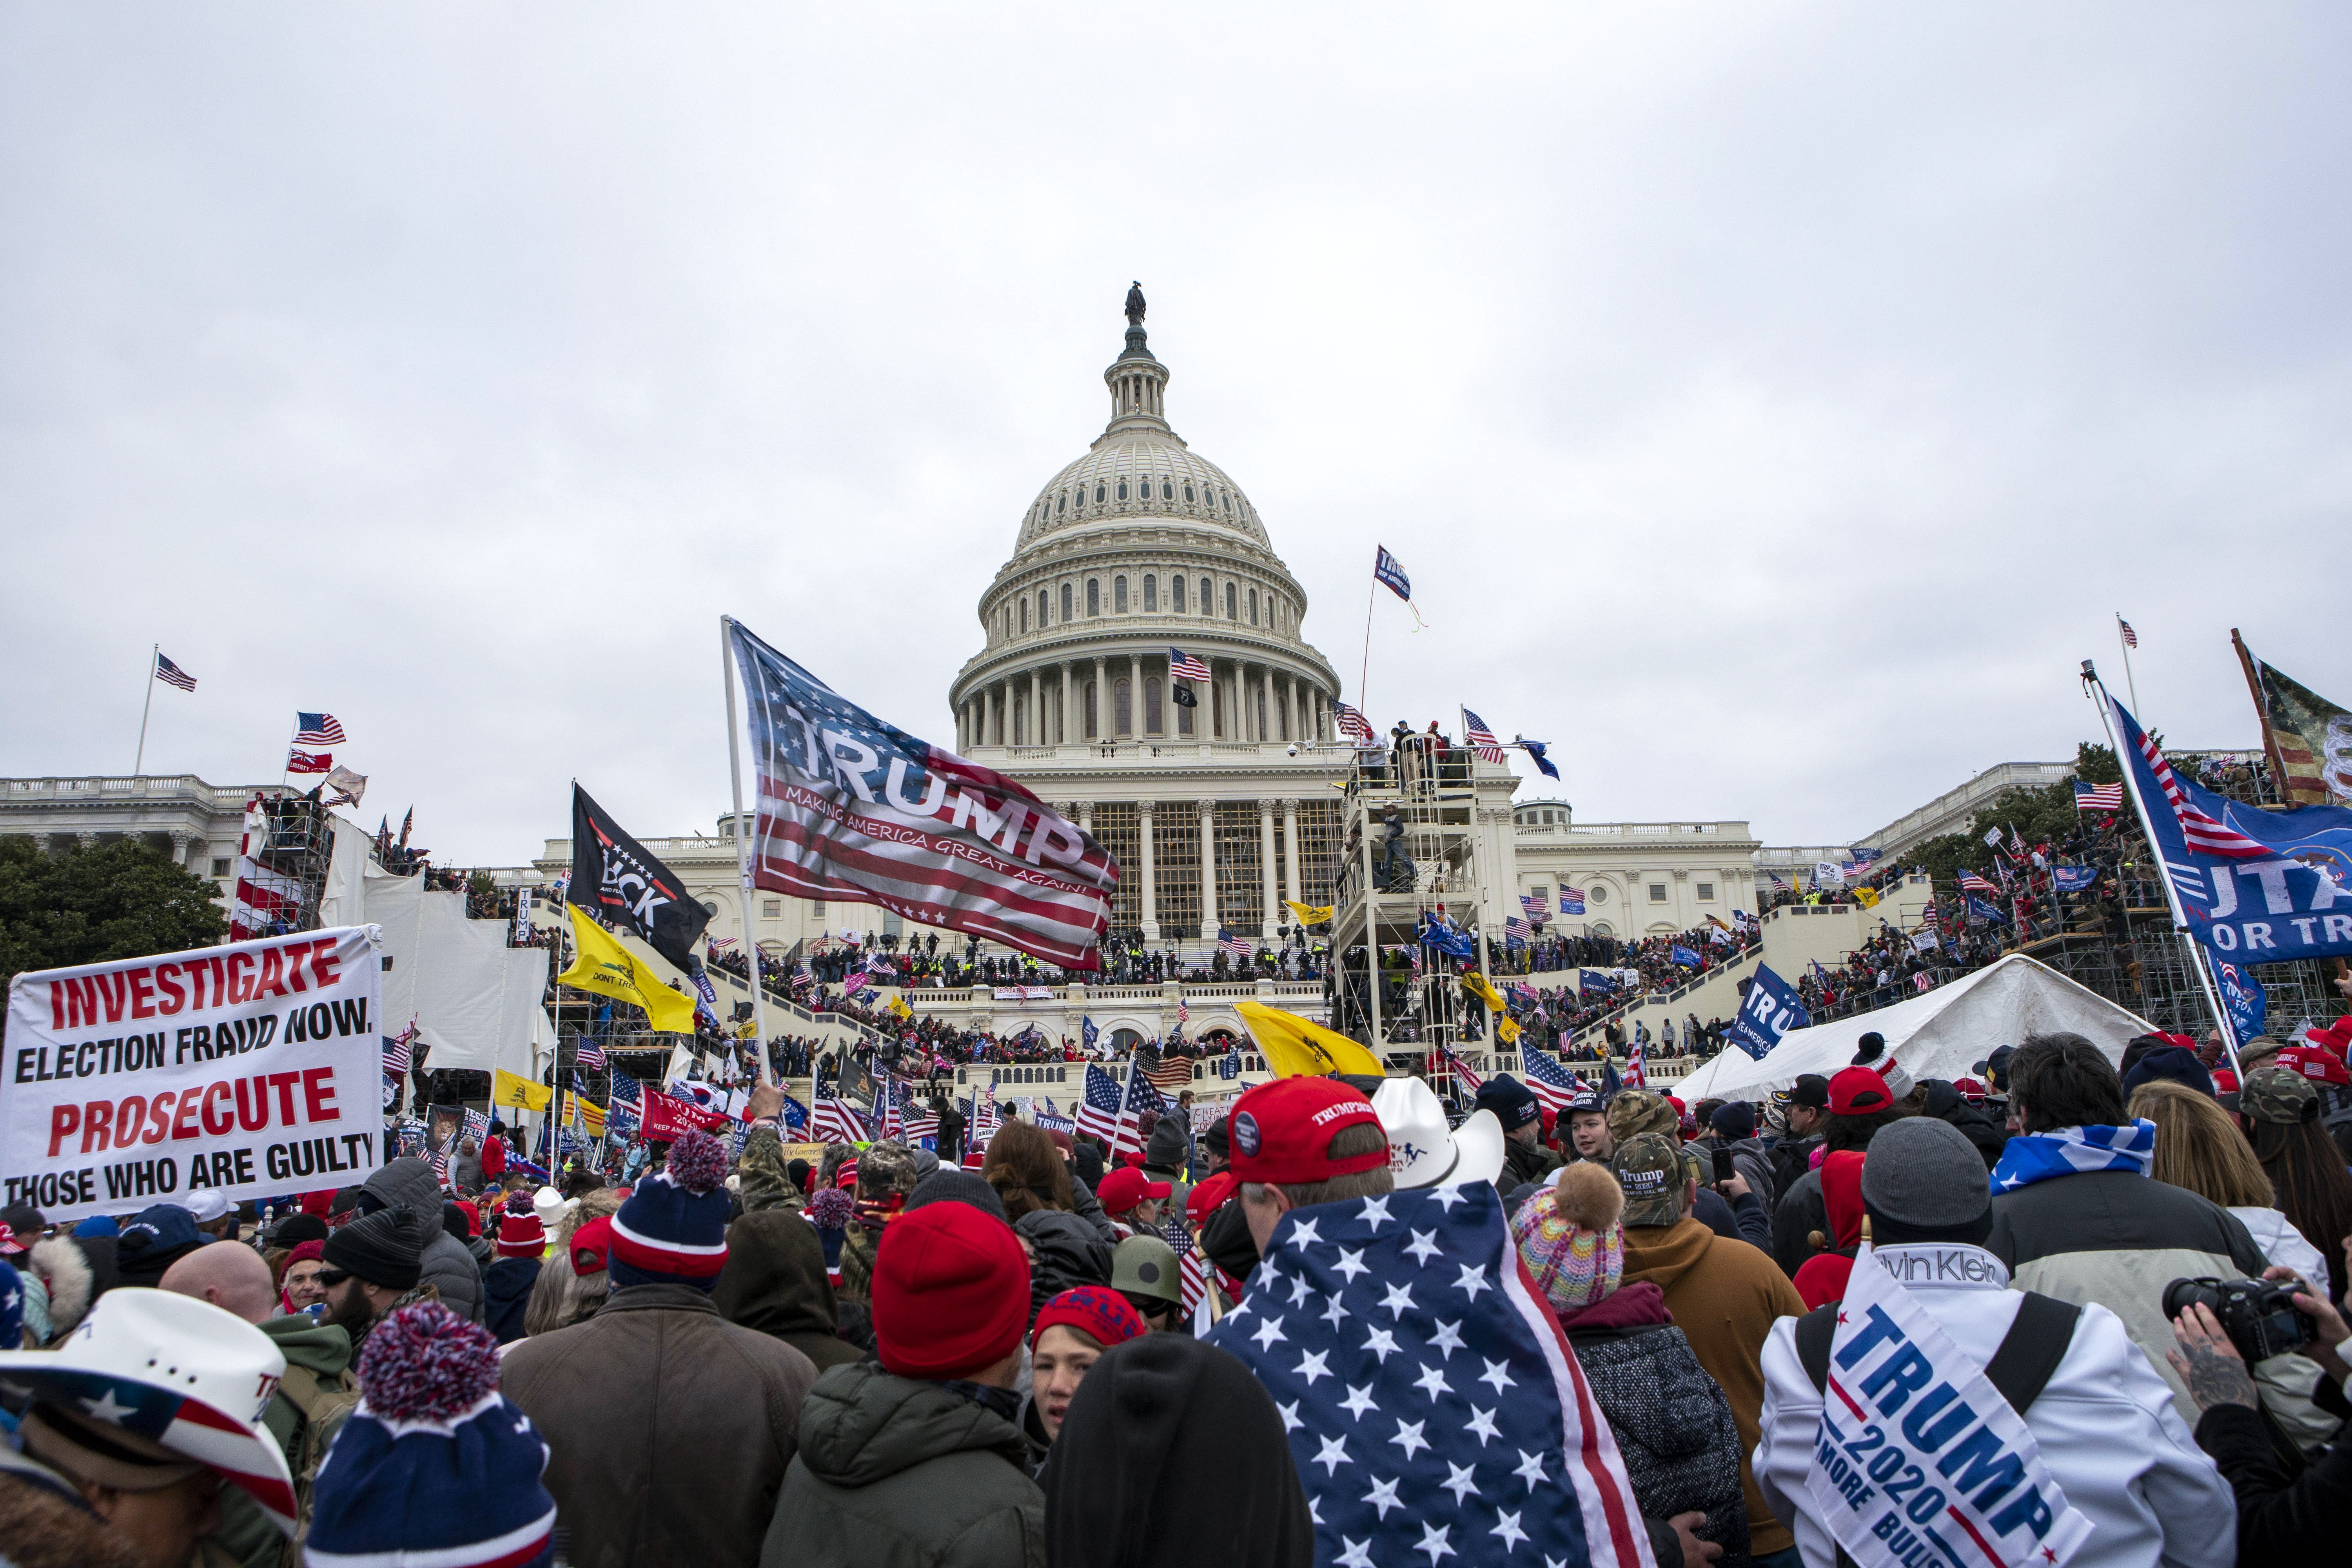 Supporters of President Donald Trump rally at the U.S. Capitol on Wednesday, Jan. 6, 2021, in Washington. (